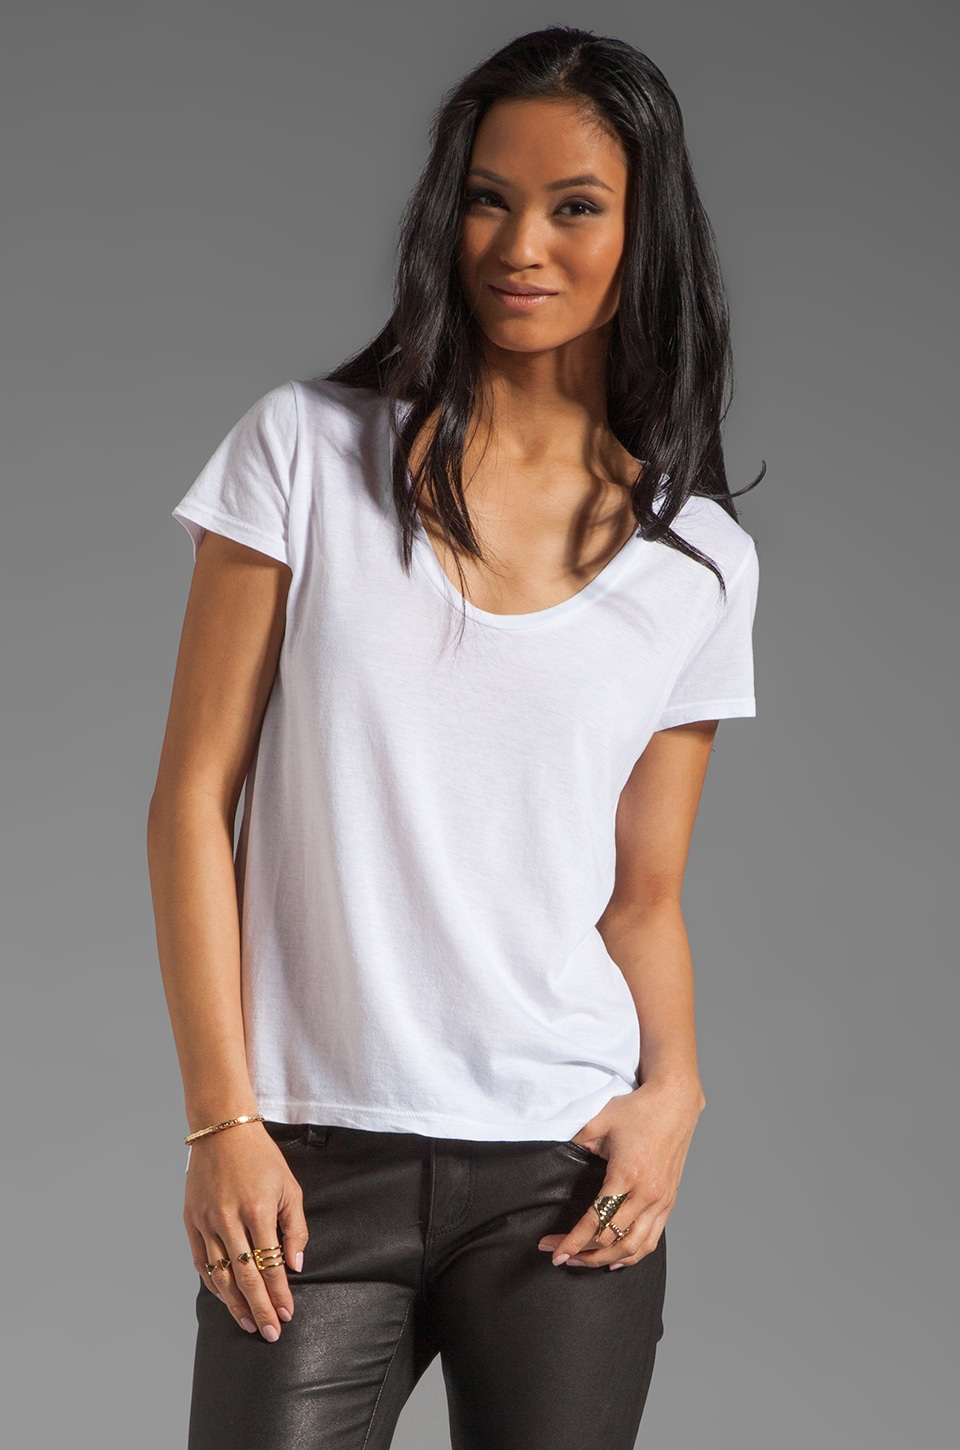 Splendid Very Light Jersey Tee in White